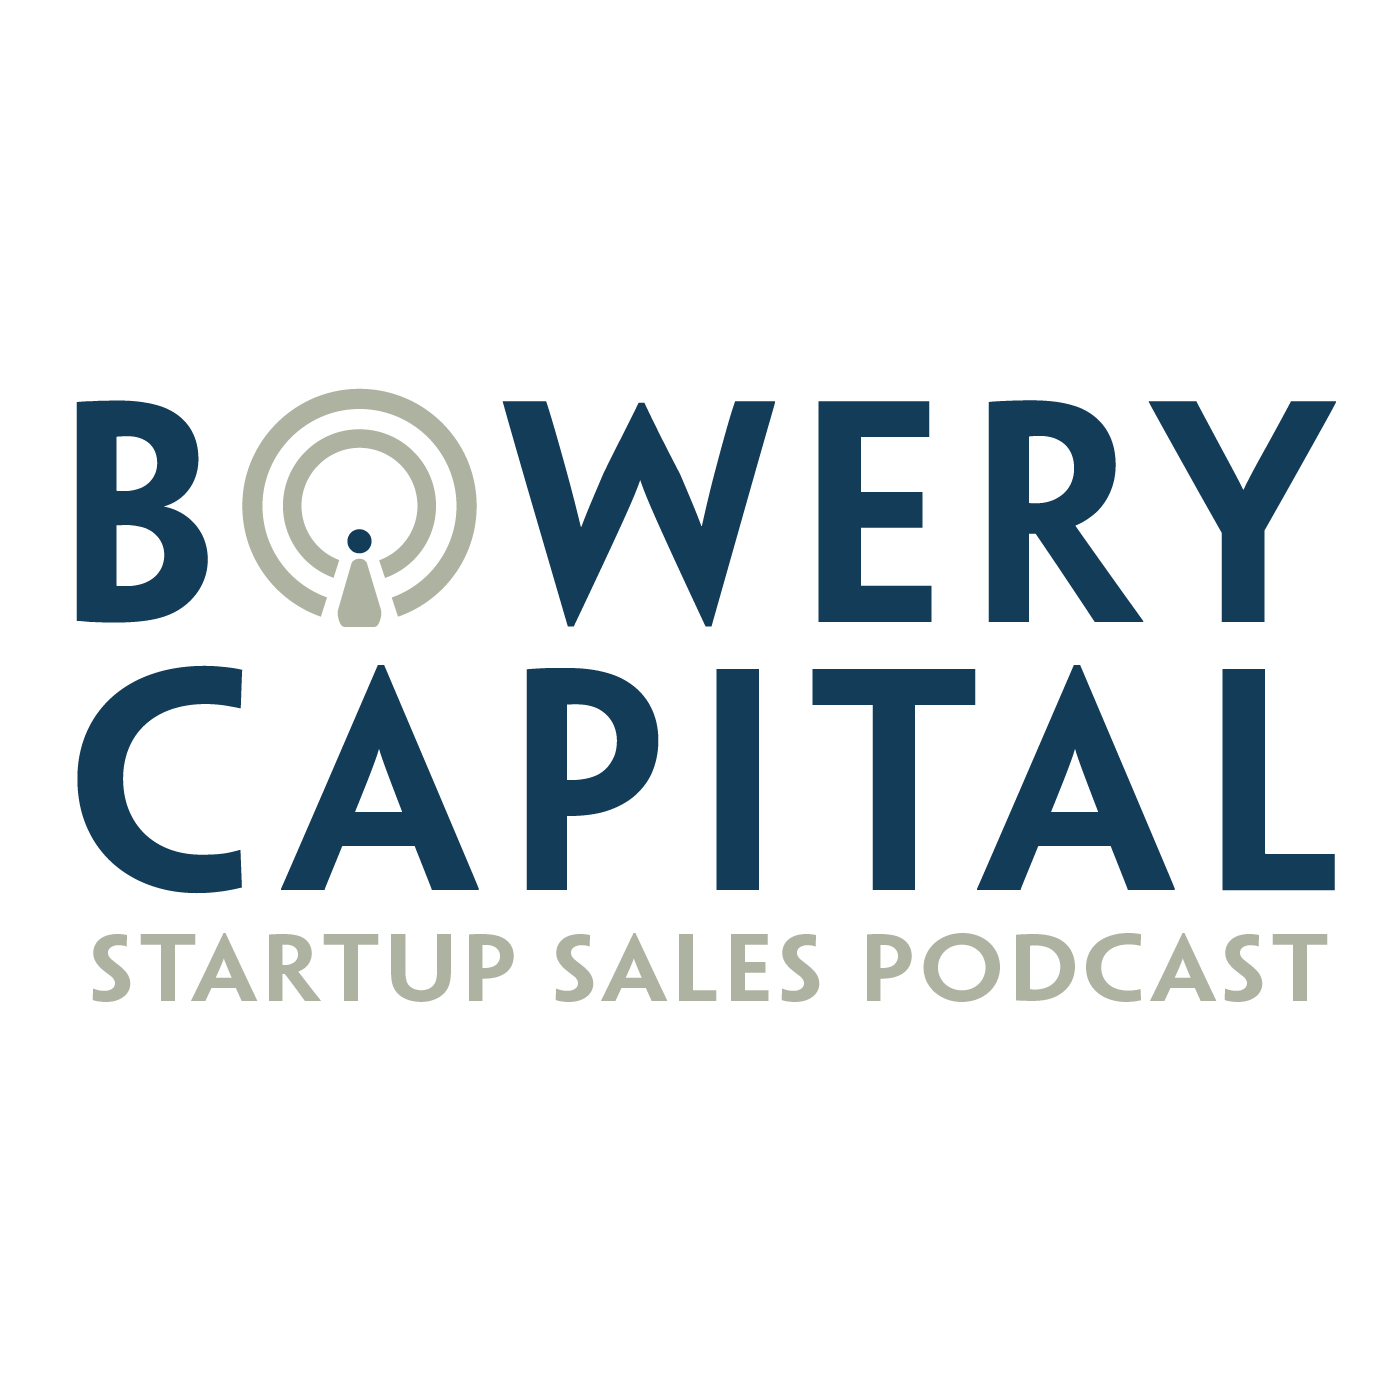 Bowery Capital Startup Sales Podcast show art